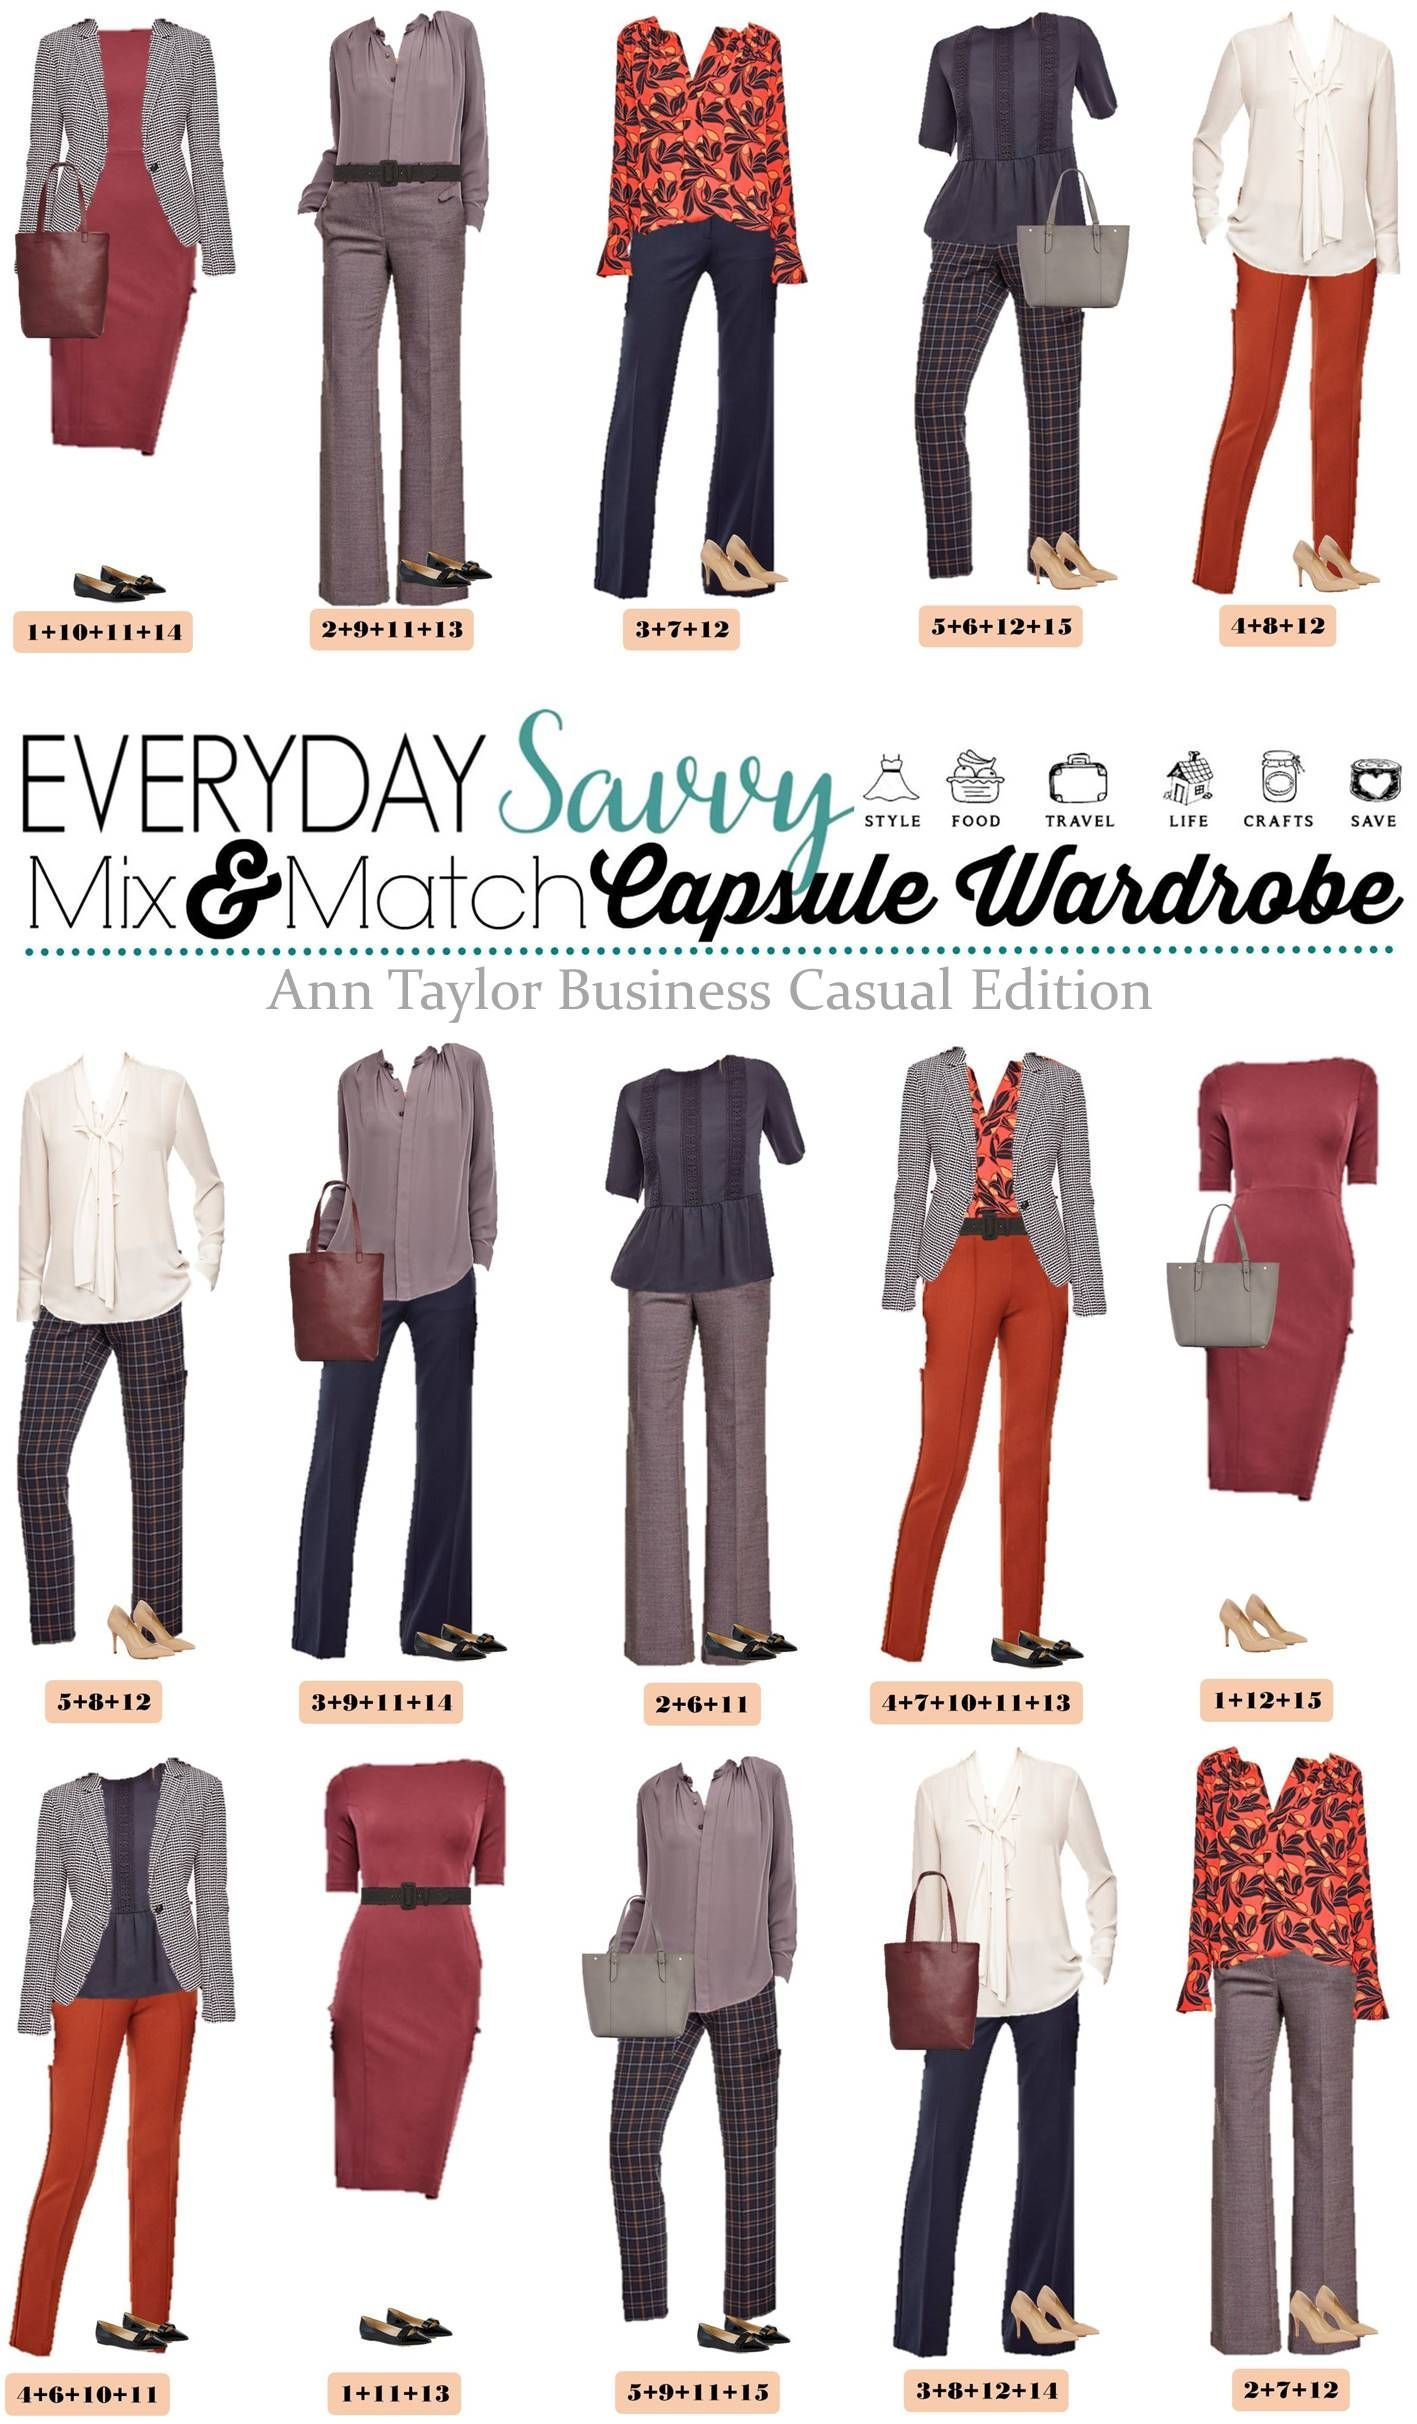 Ann Taylor Business Casual Capsule Wardrobe – Mix & Match Outfits for the Office